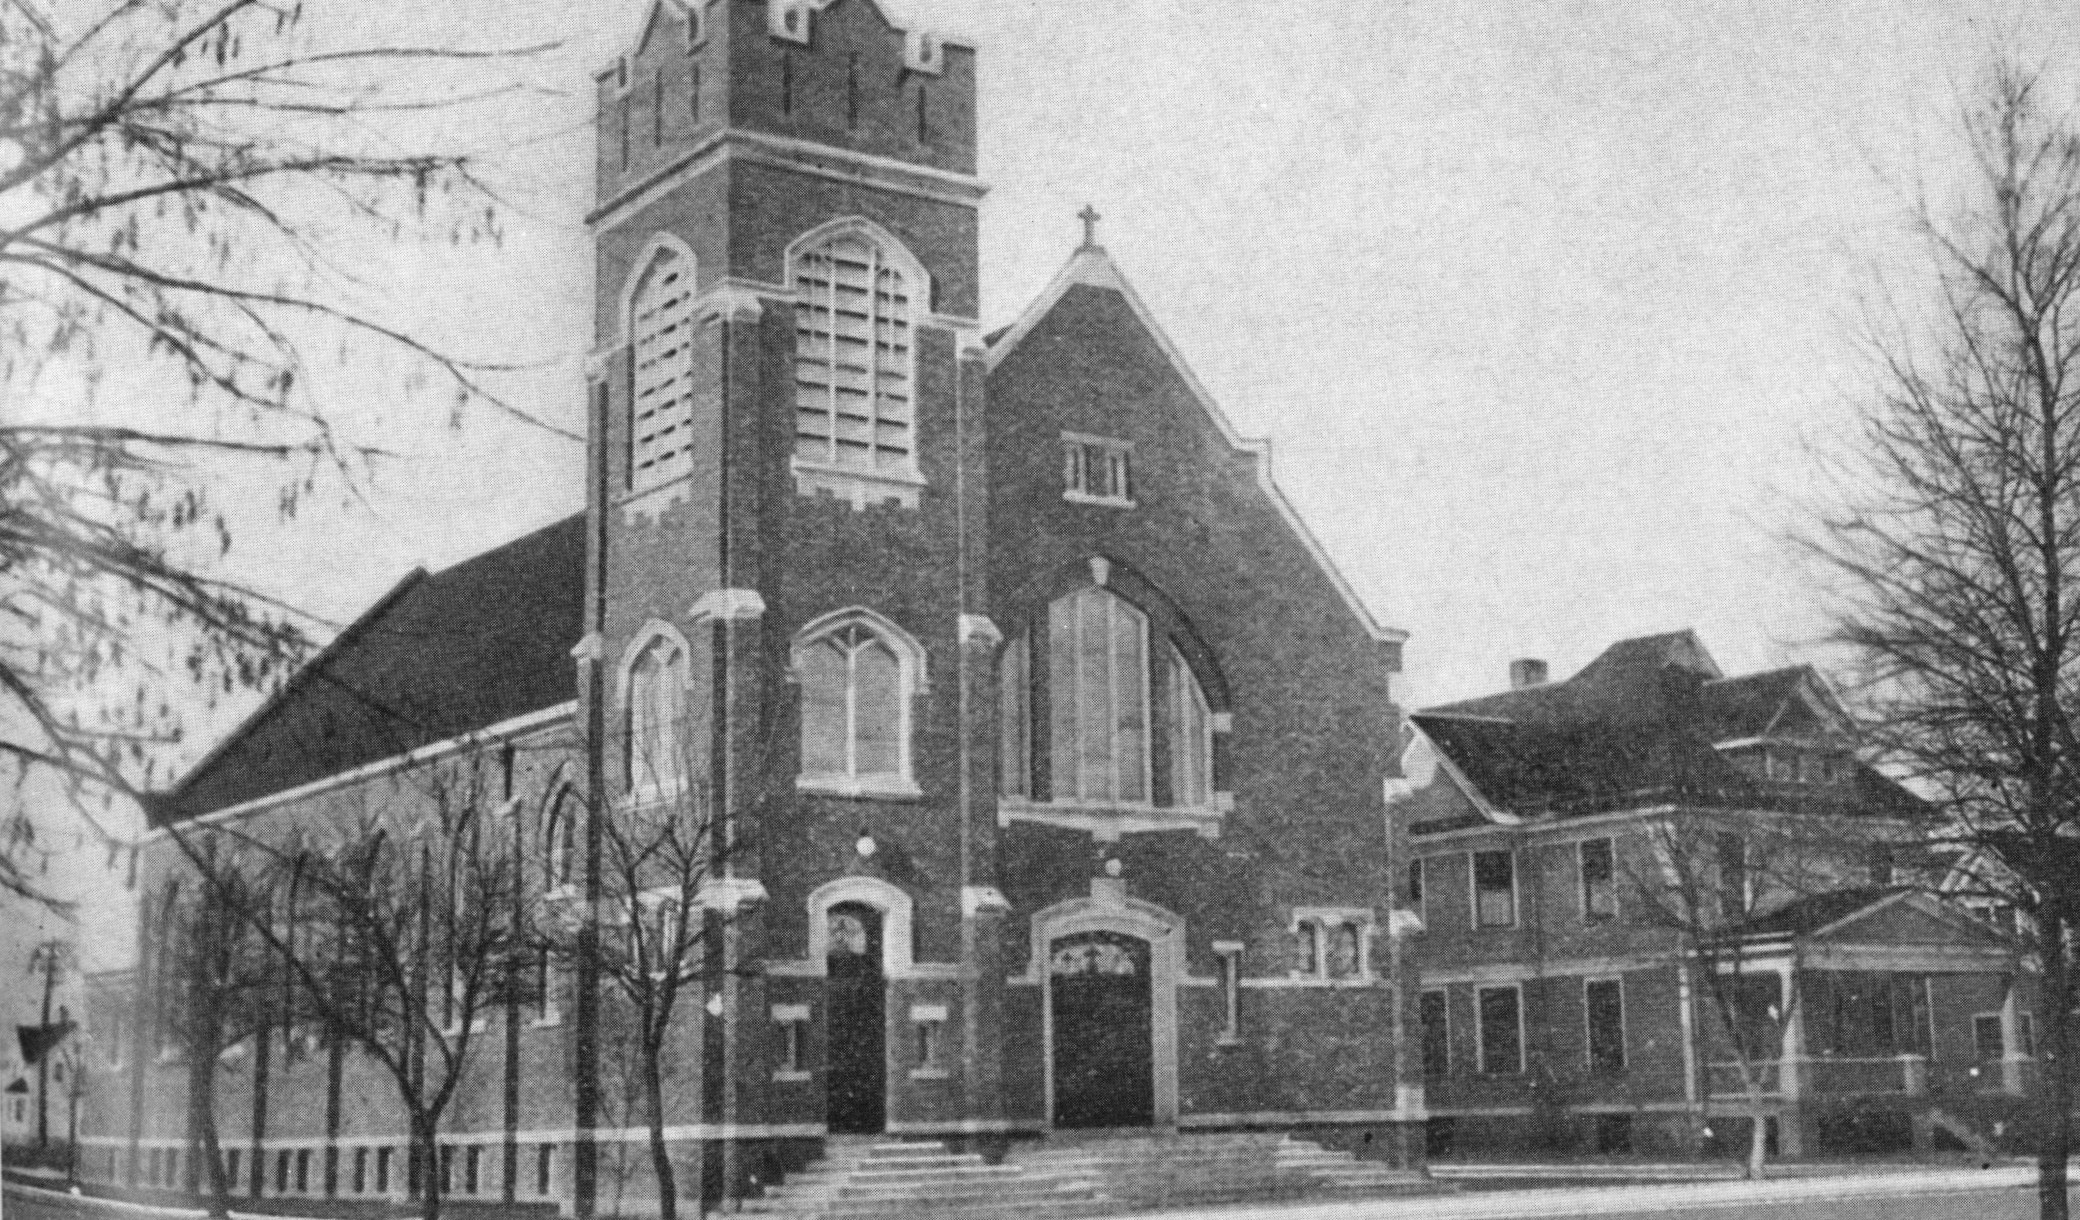 The brick church which opened in 1915.